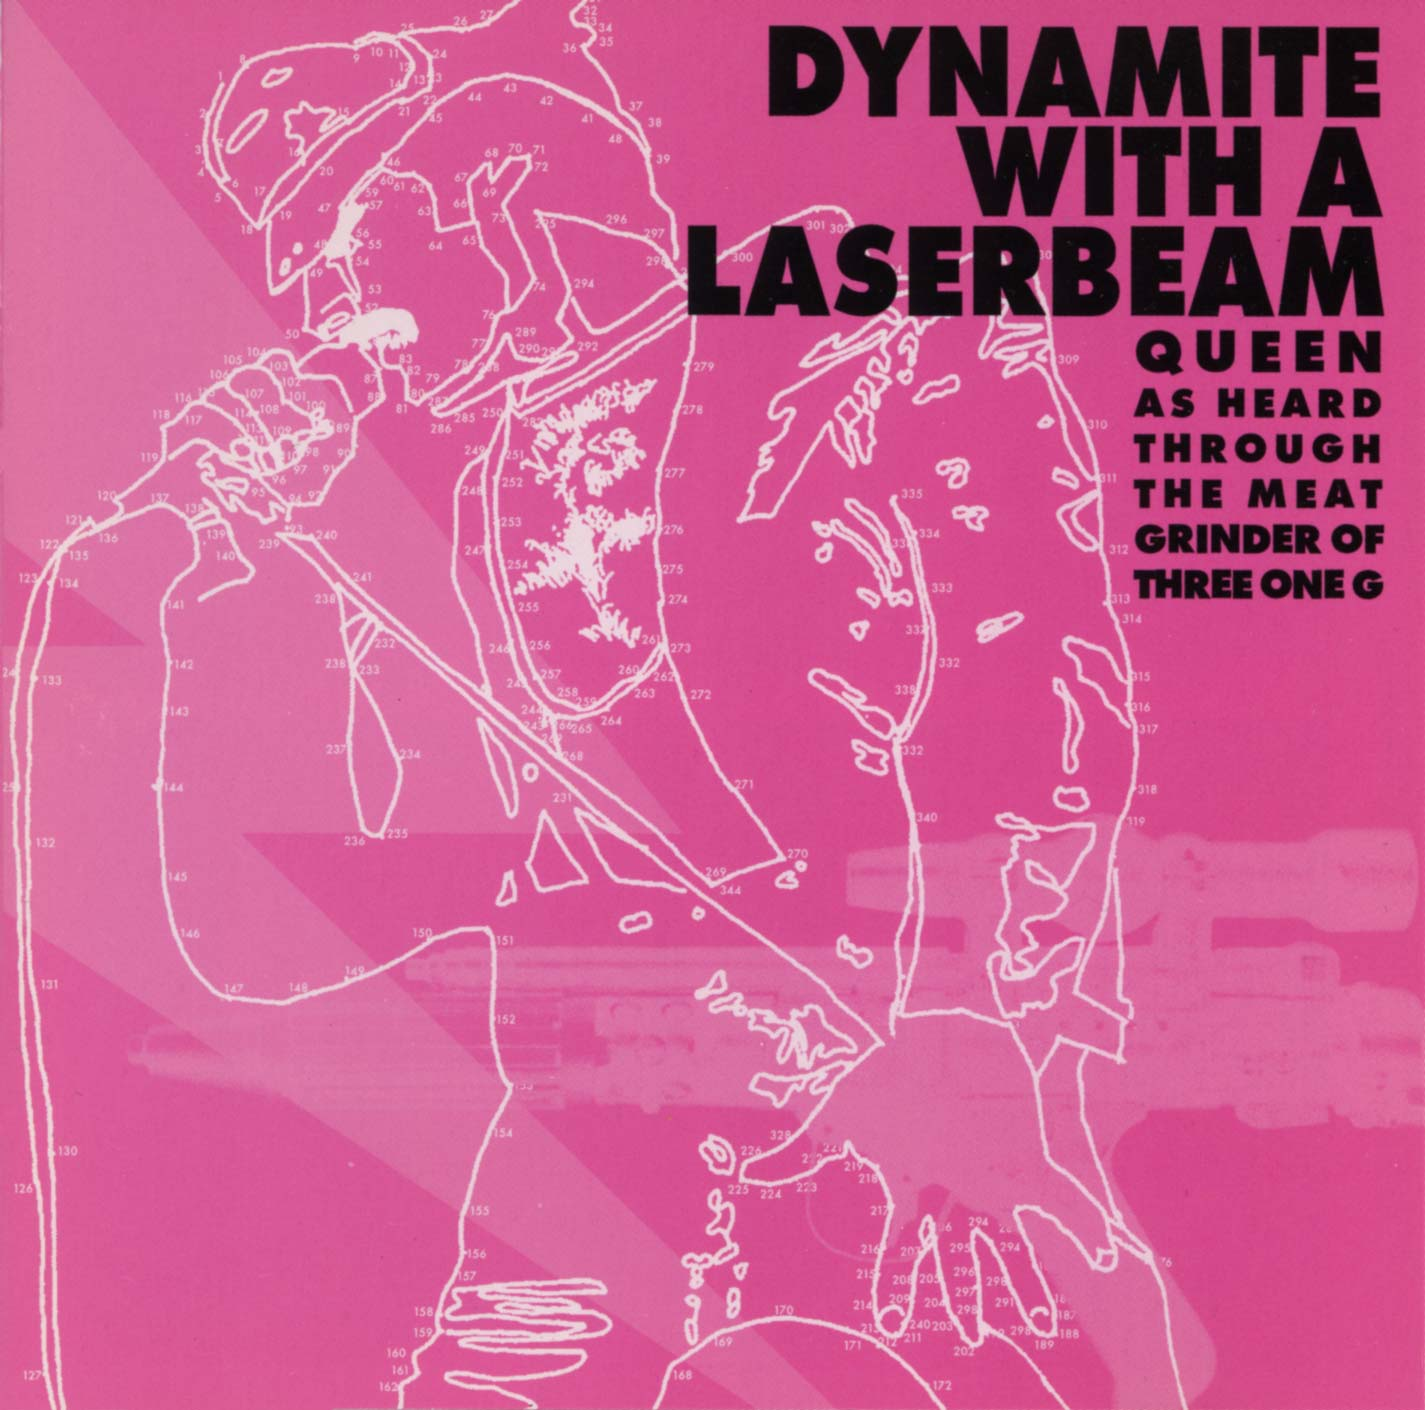 Dynamite with a Laserbeam - Monoroid